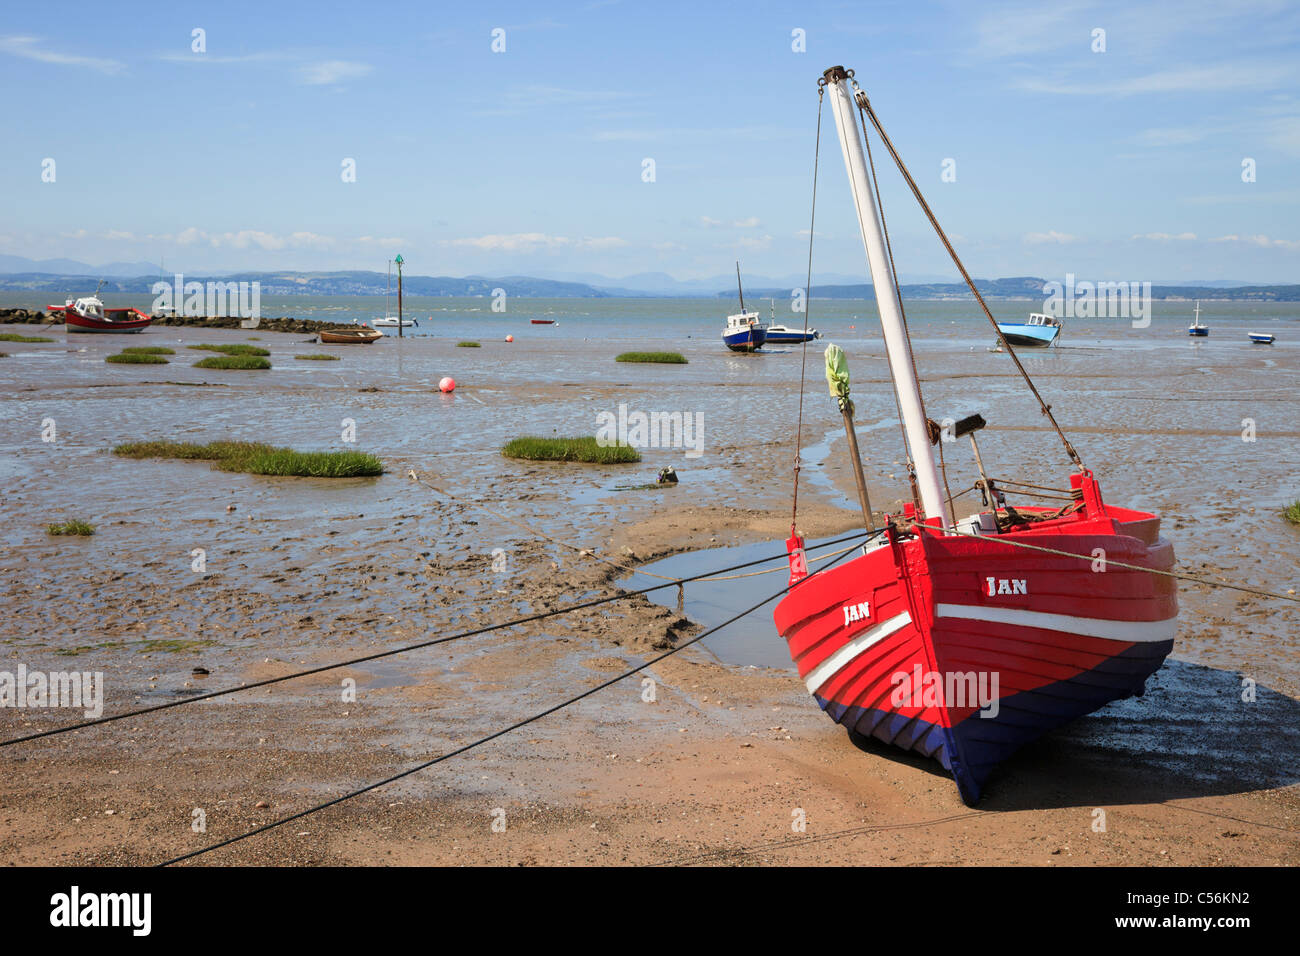 Beached red boat on the sands at low tide in Morecambe Bay, Lancashire, England, UK, Britain. - Stock Image